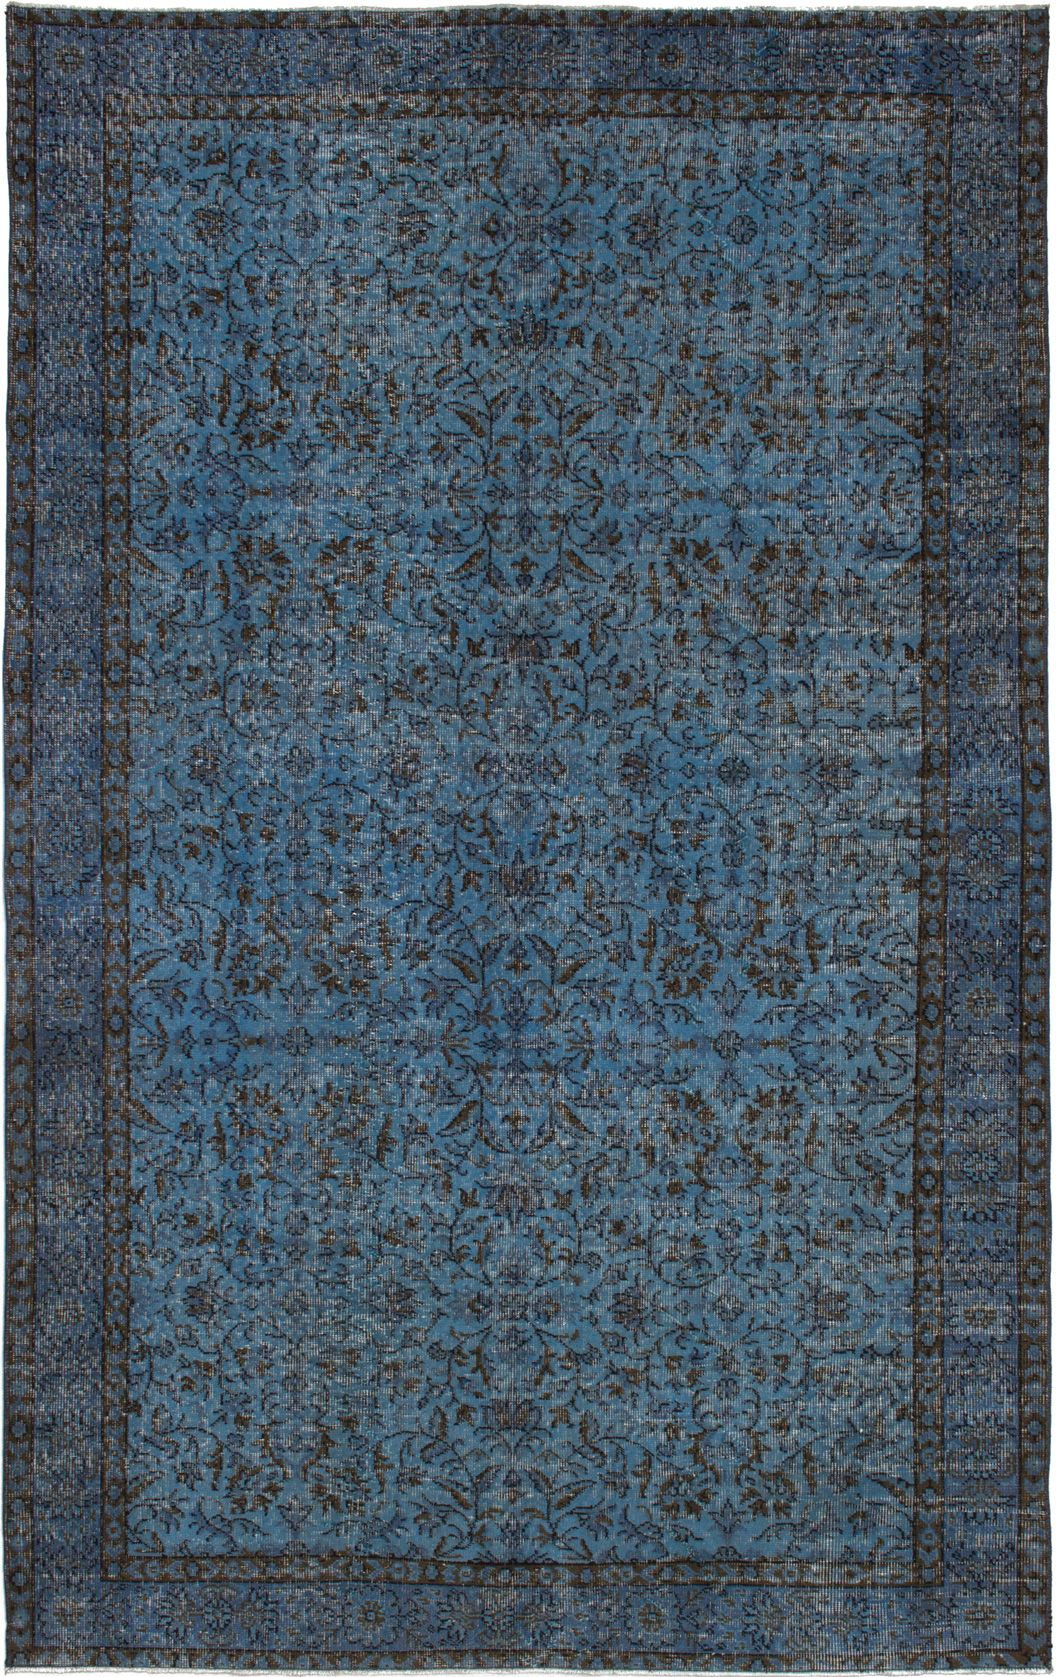 """Hand-knotted Color Transition Blue Wool Rug 5'6"""" x 8'11"""" Size: 5'6"""" x 8'11"""""""